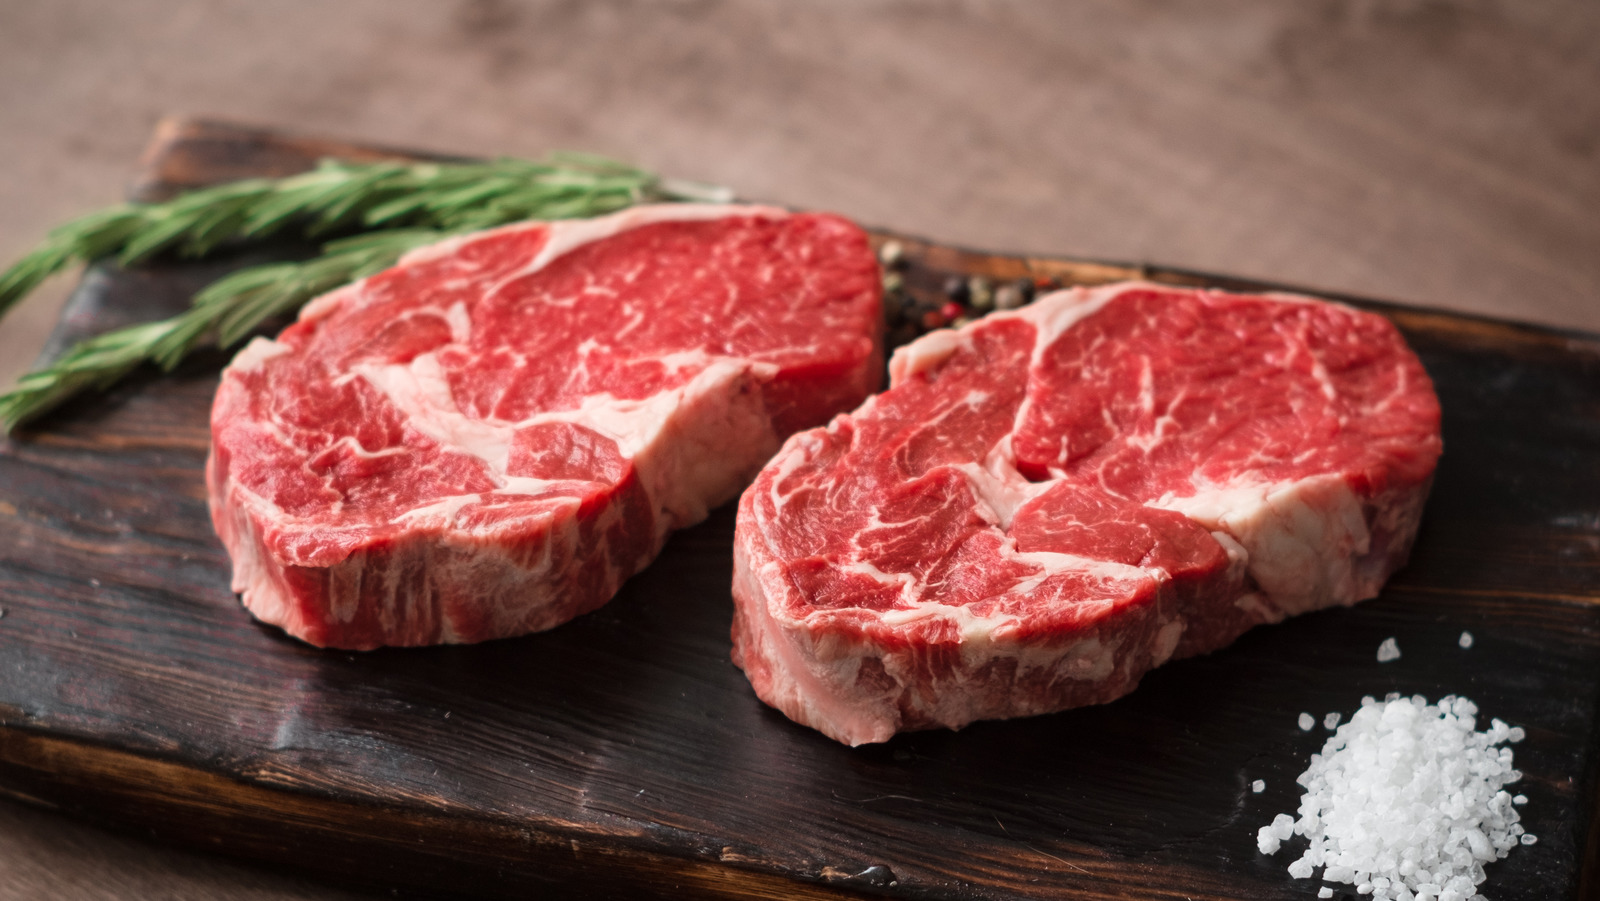 When you stop eating red meat, this is...